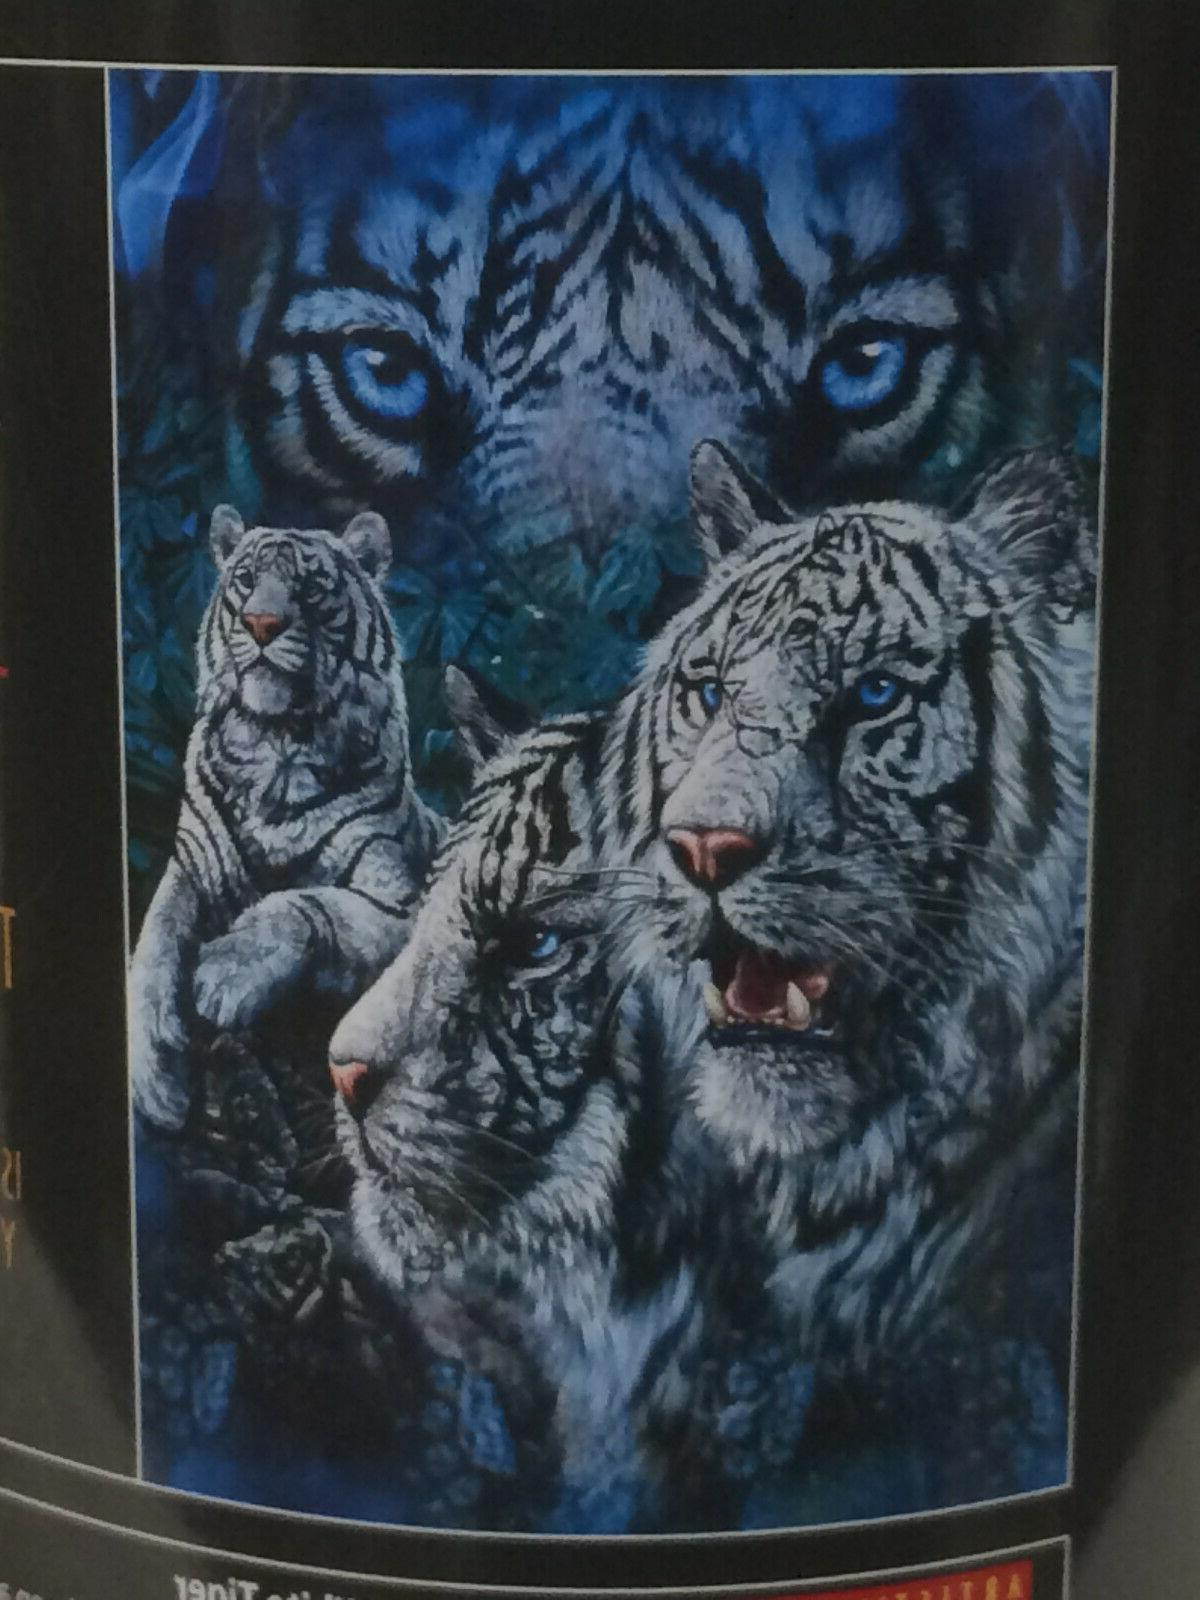 *OPEN ITEM* White Tigers Tiger blanket throw NEW